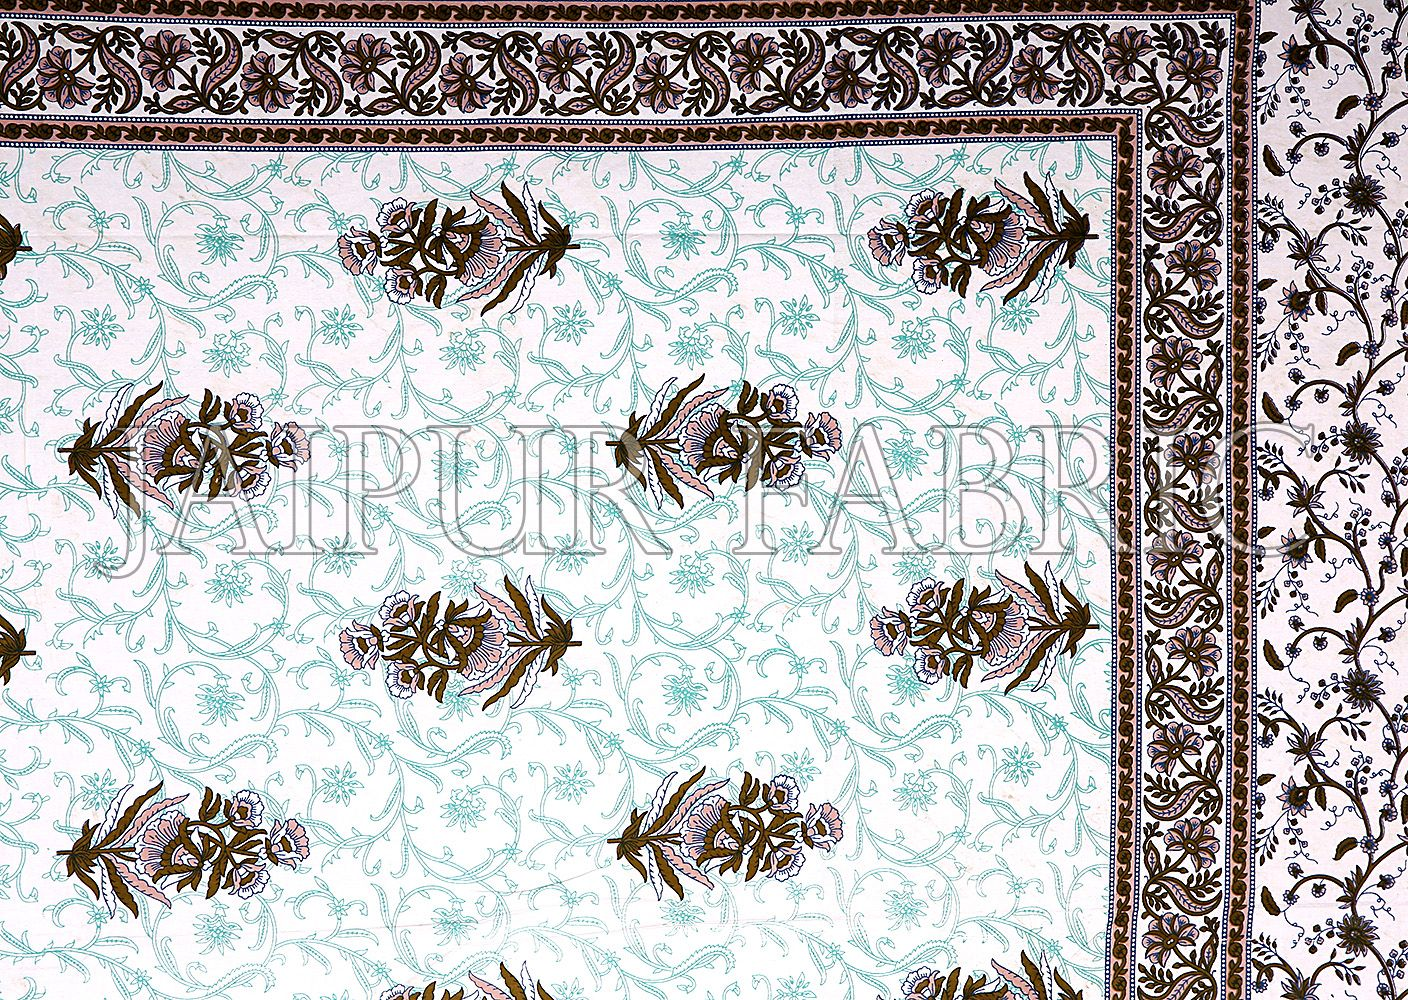 Sea Green Border White Base Flower & Leaf Pattern Screen Print Cotton Double Bed Sheet